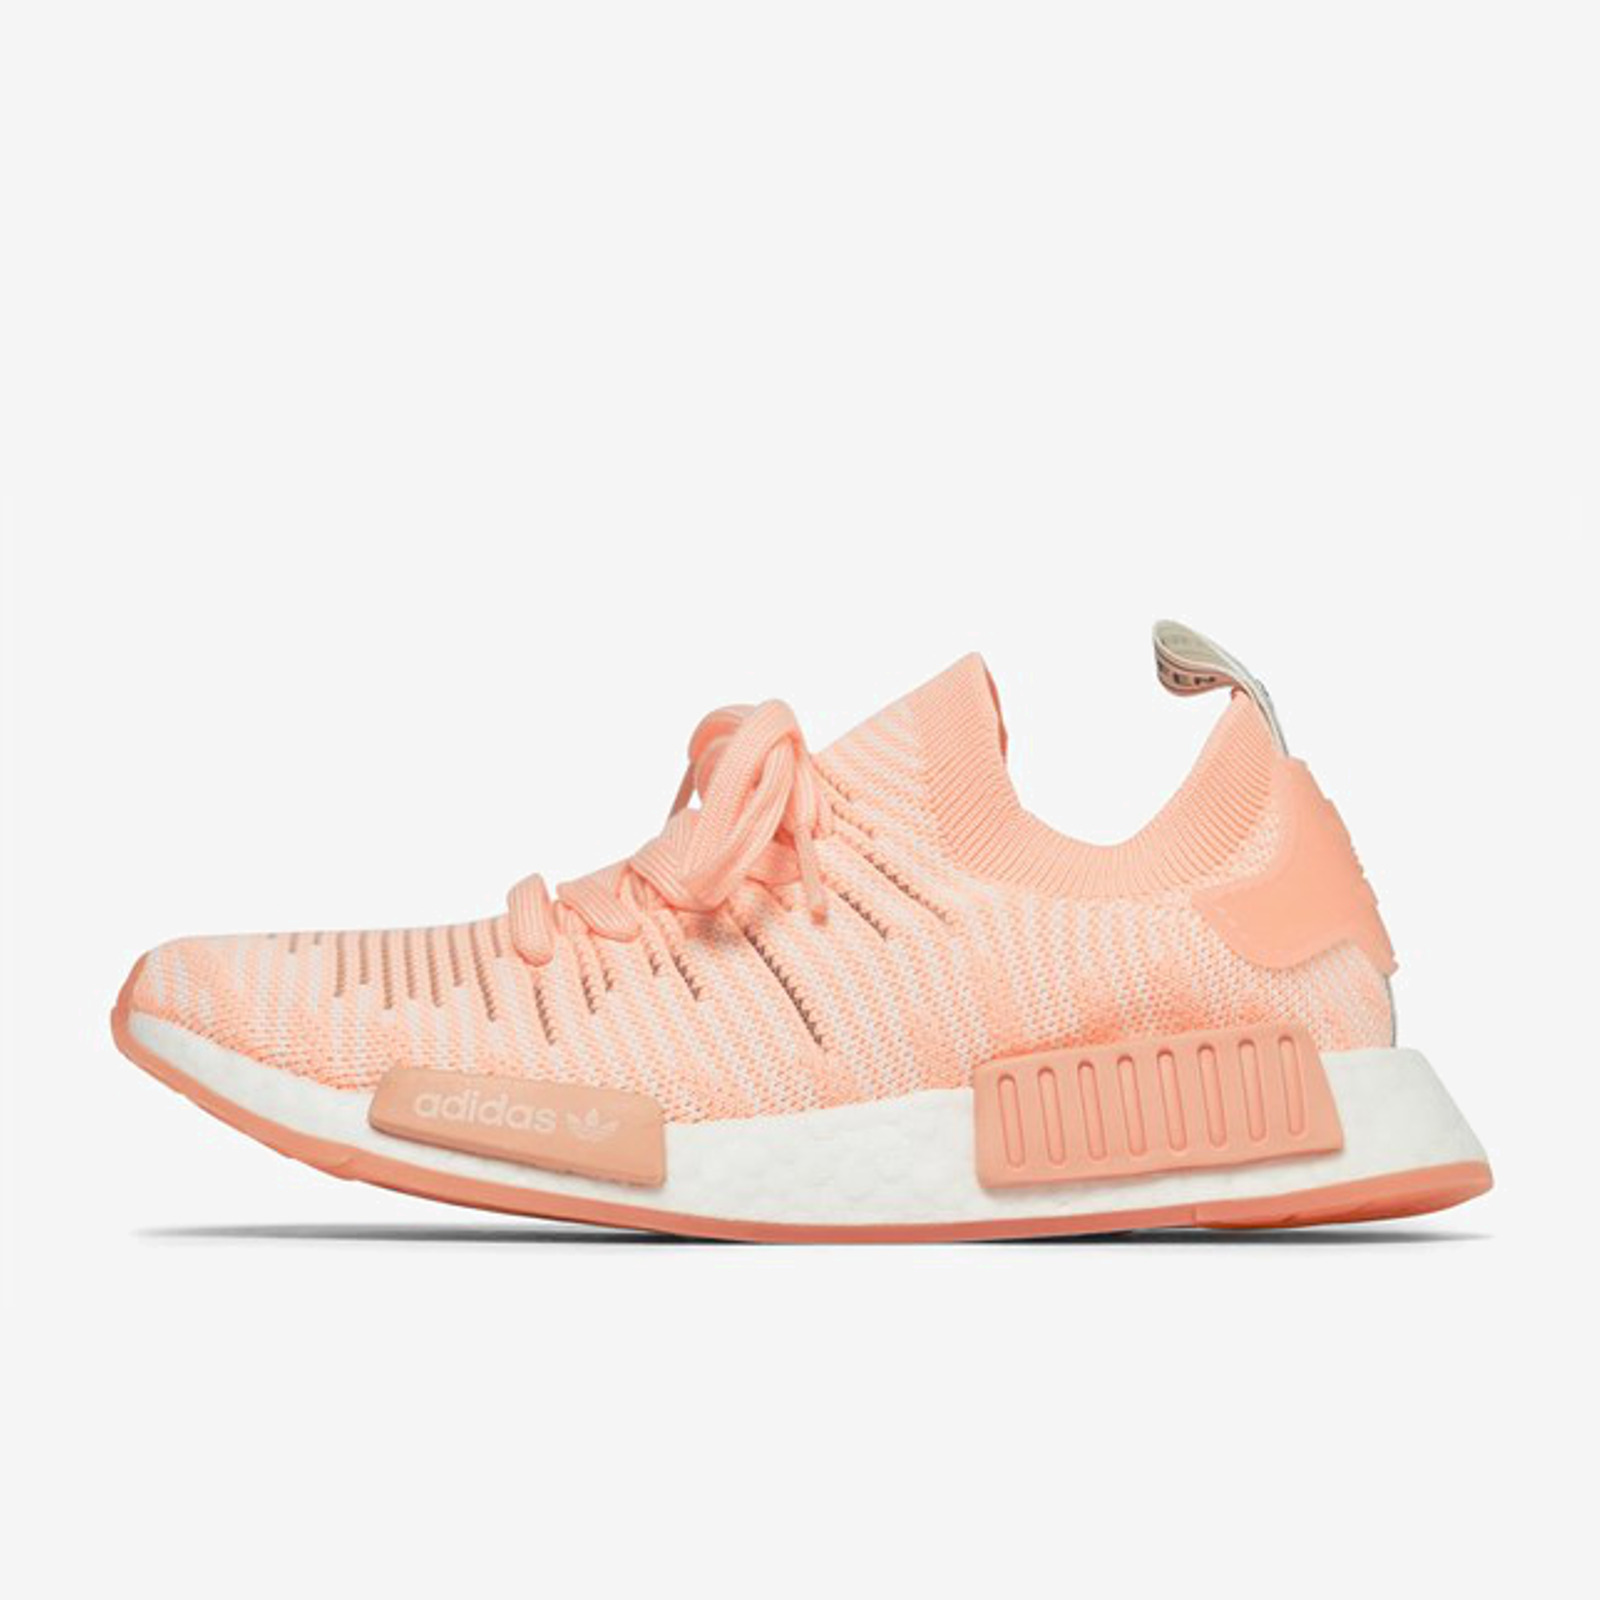 Details about ADIDAS WOMEN NMD R1 STLT PRIMEKNIT AQ1119 CLEAR ORANGE RUNNING WHITE